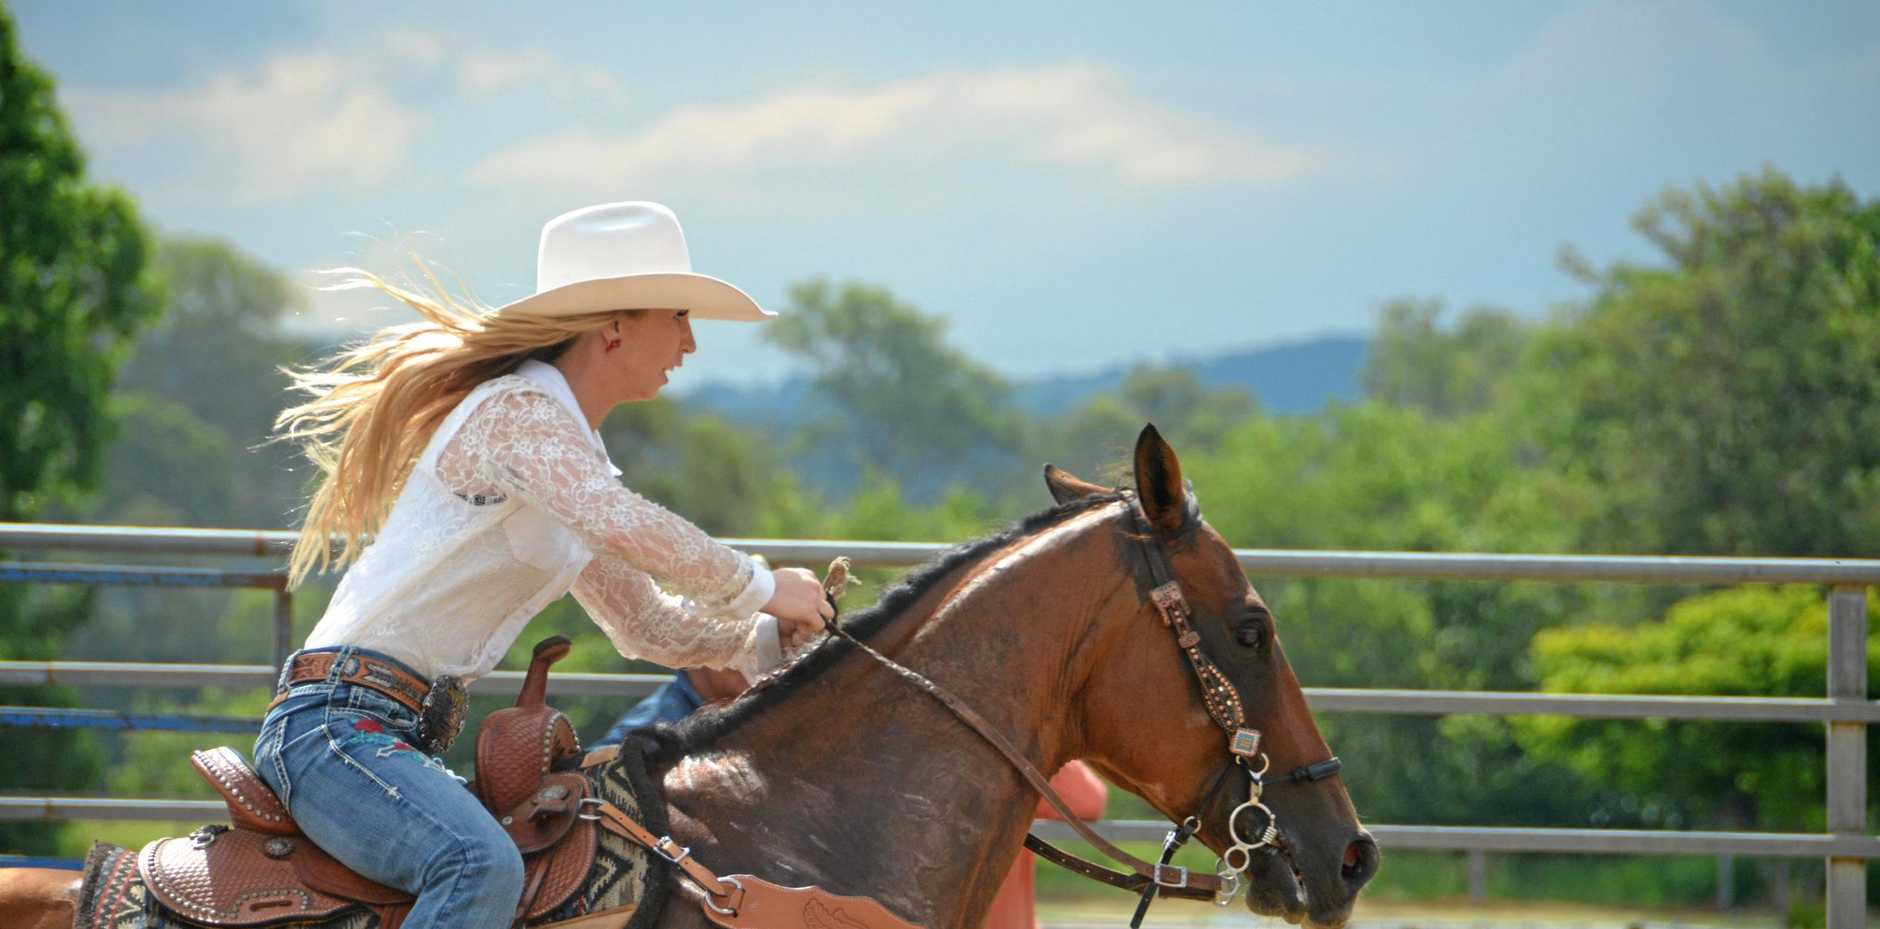 The 2017 Rodeo Queen Creedence Donoghue at the Goomeri Rodeo.